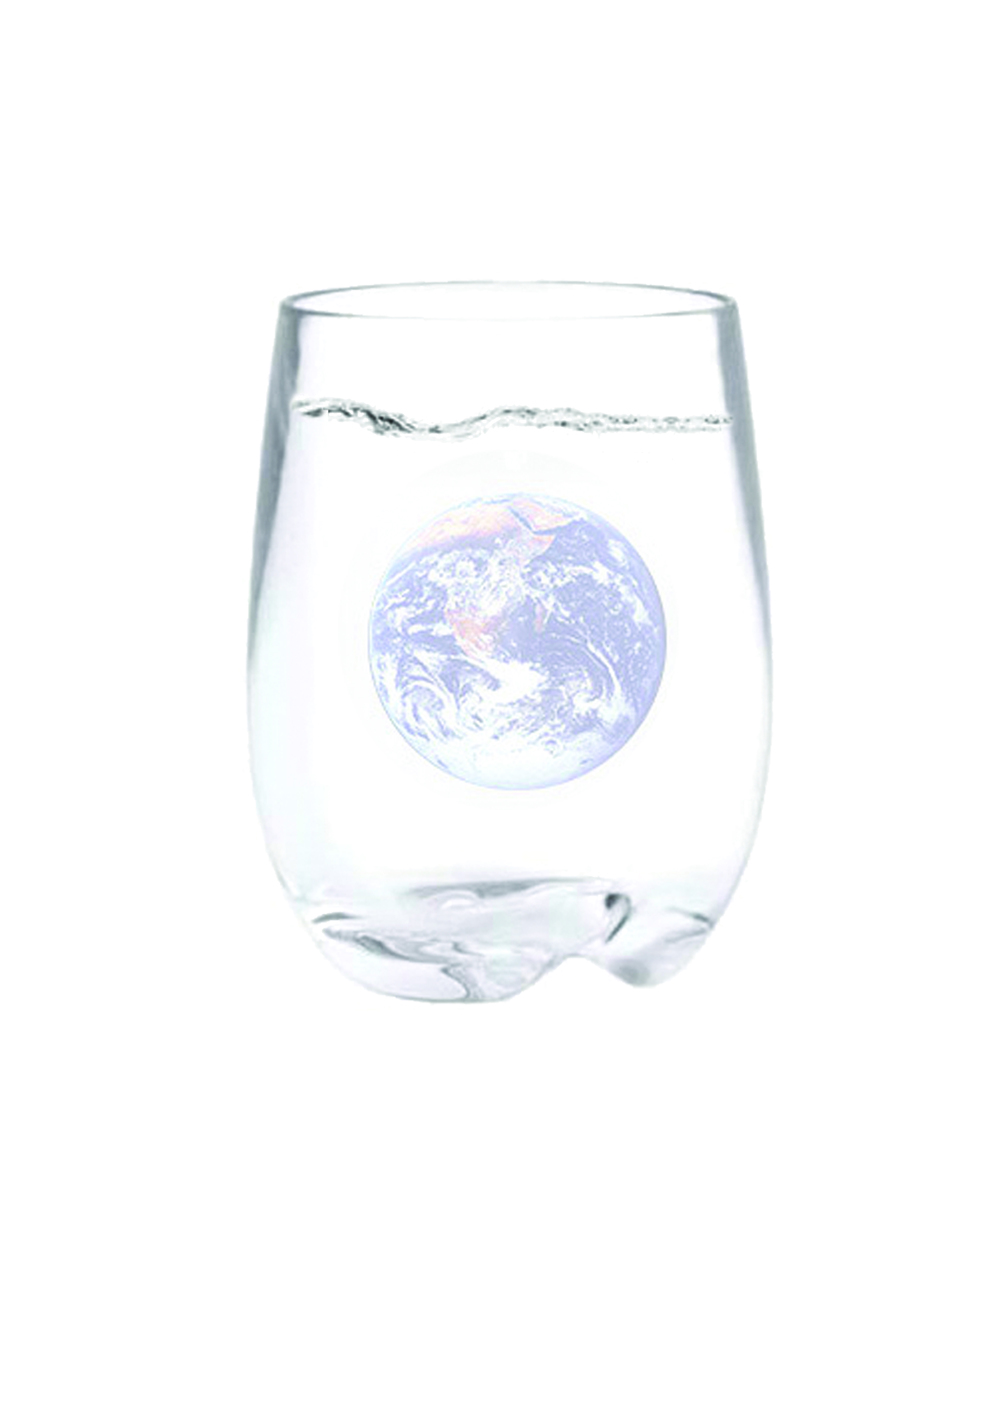 HinemoDesigns_Glovi_worldglass.jpg